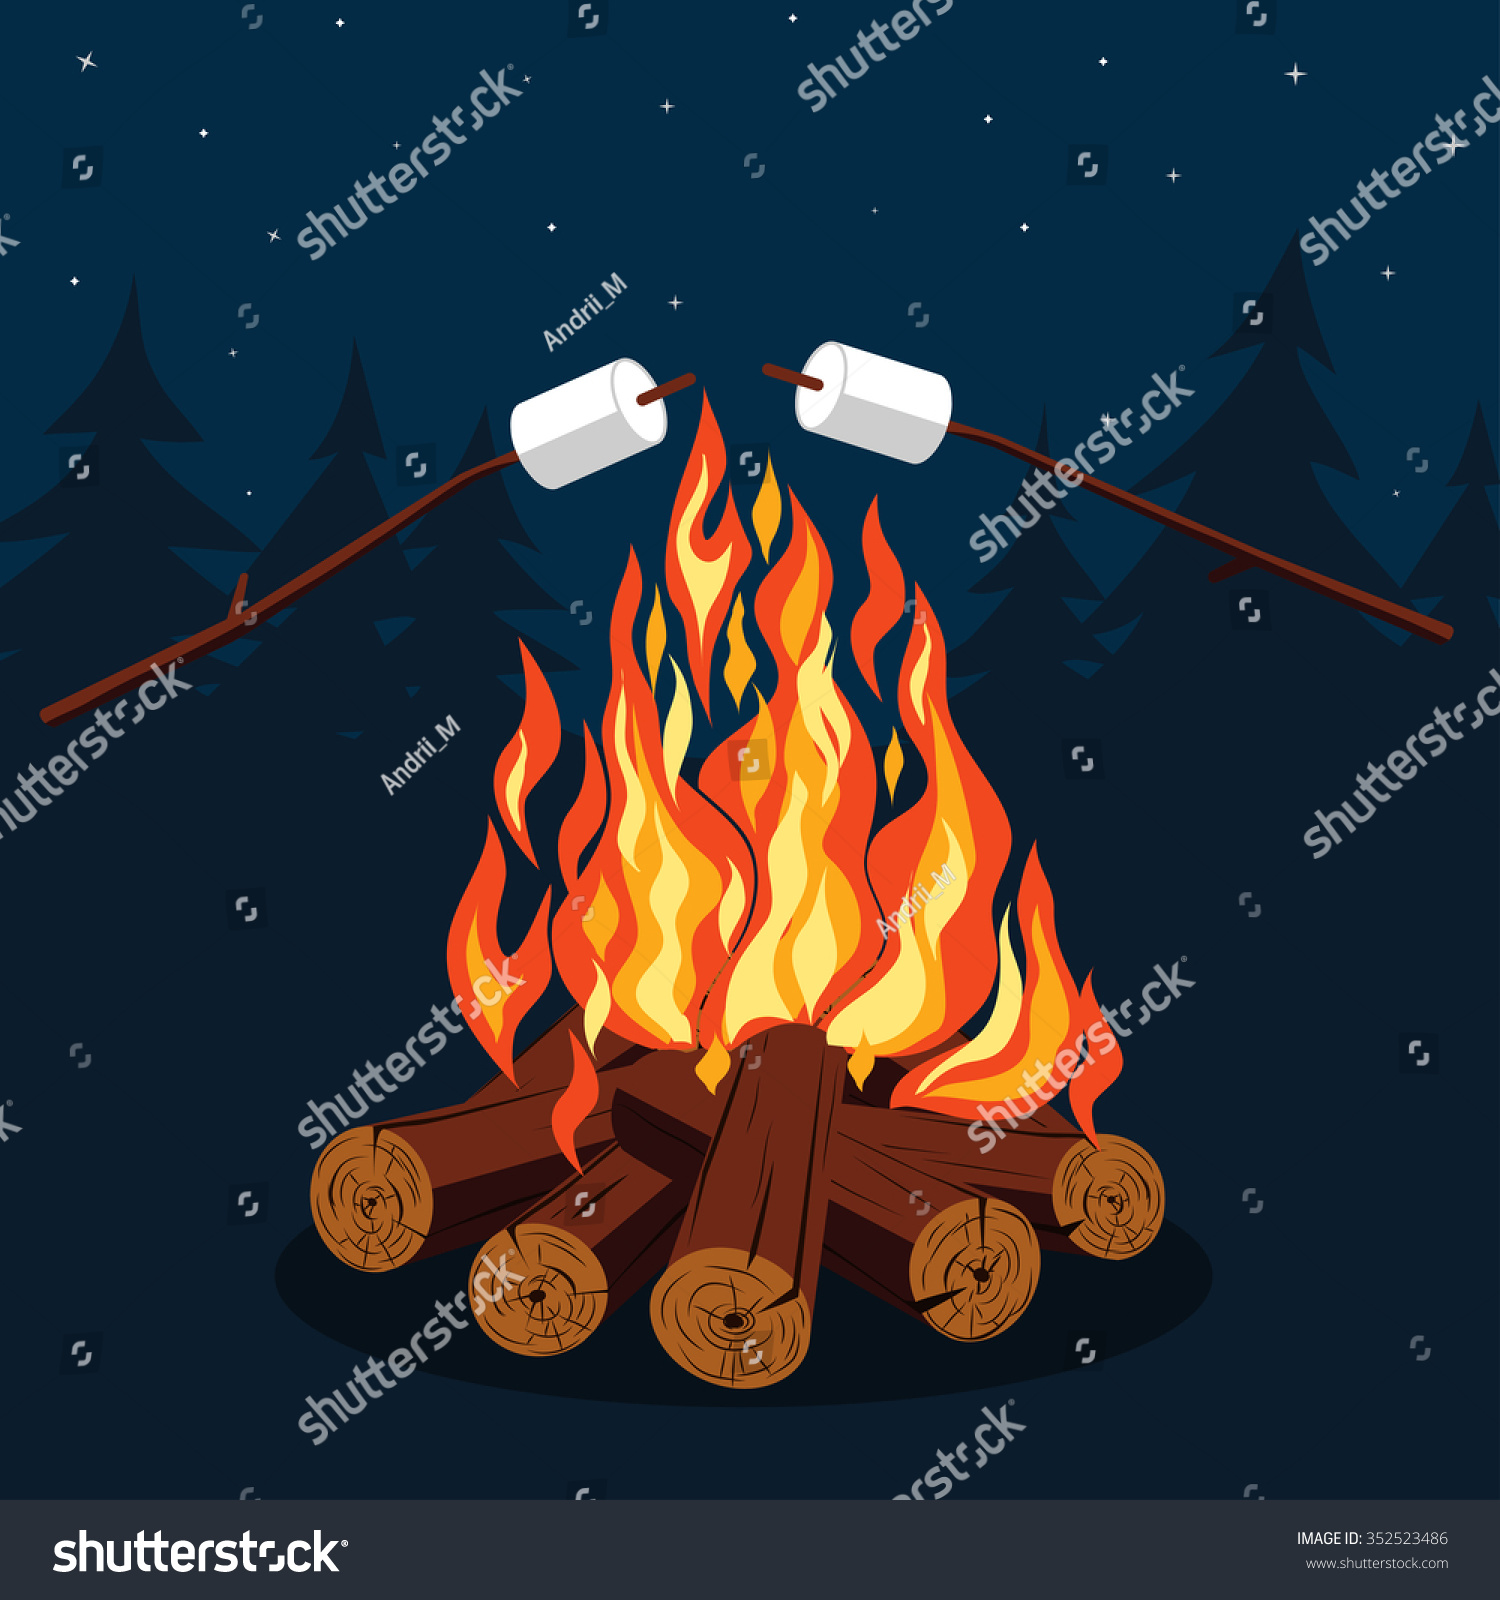 Bonfire With Marshmallow - Camping, Burning Woodpile. Vector Picture - 352523486 : Shutterstock